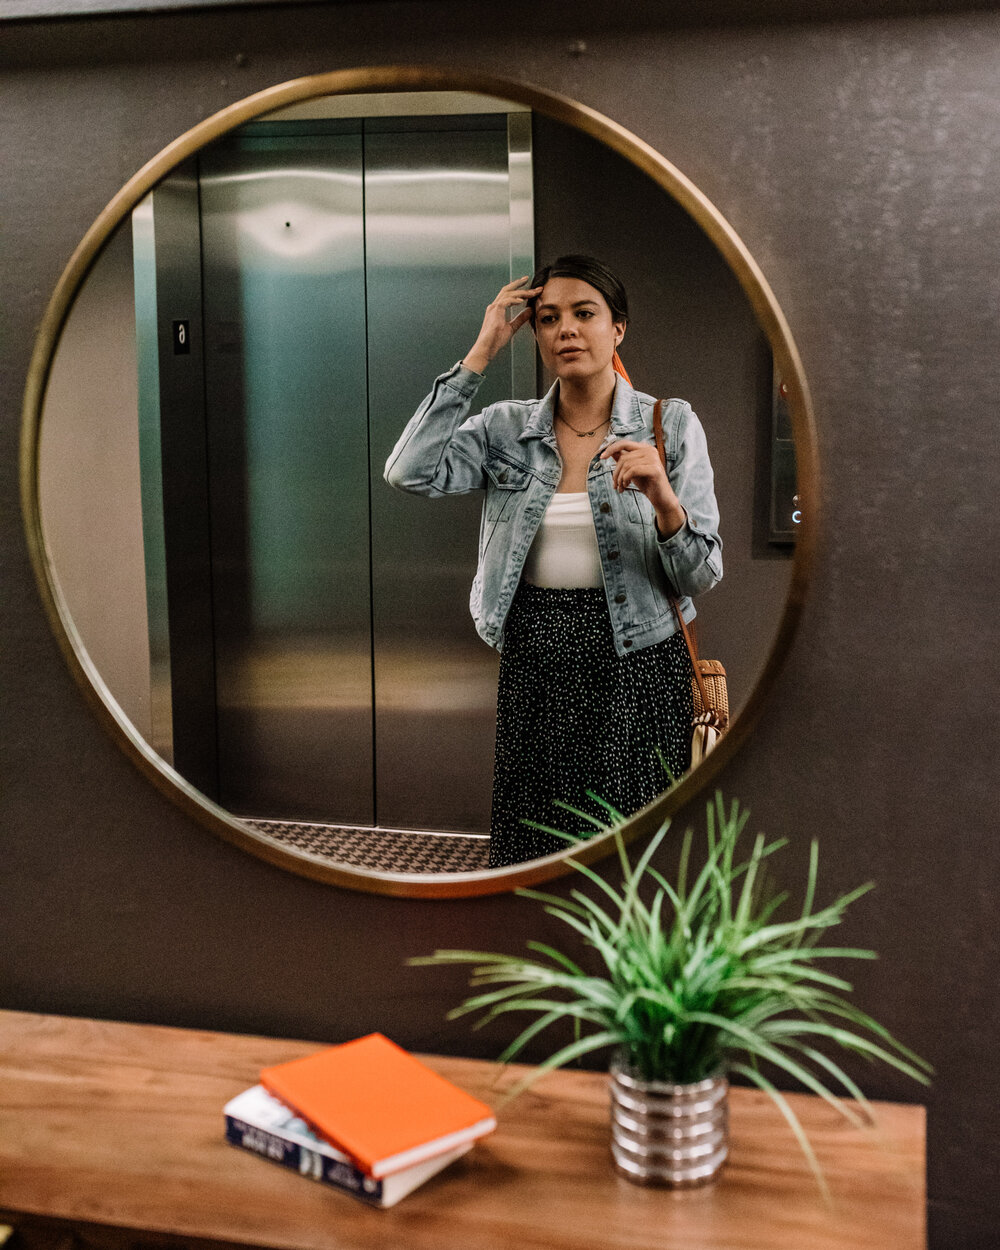 Rachel Off Duty: Woman Staring at the Mirror